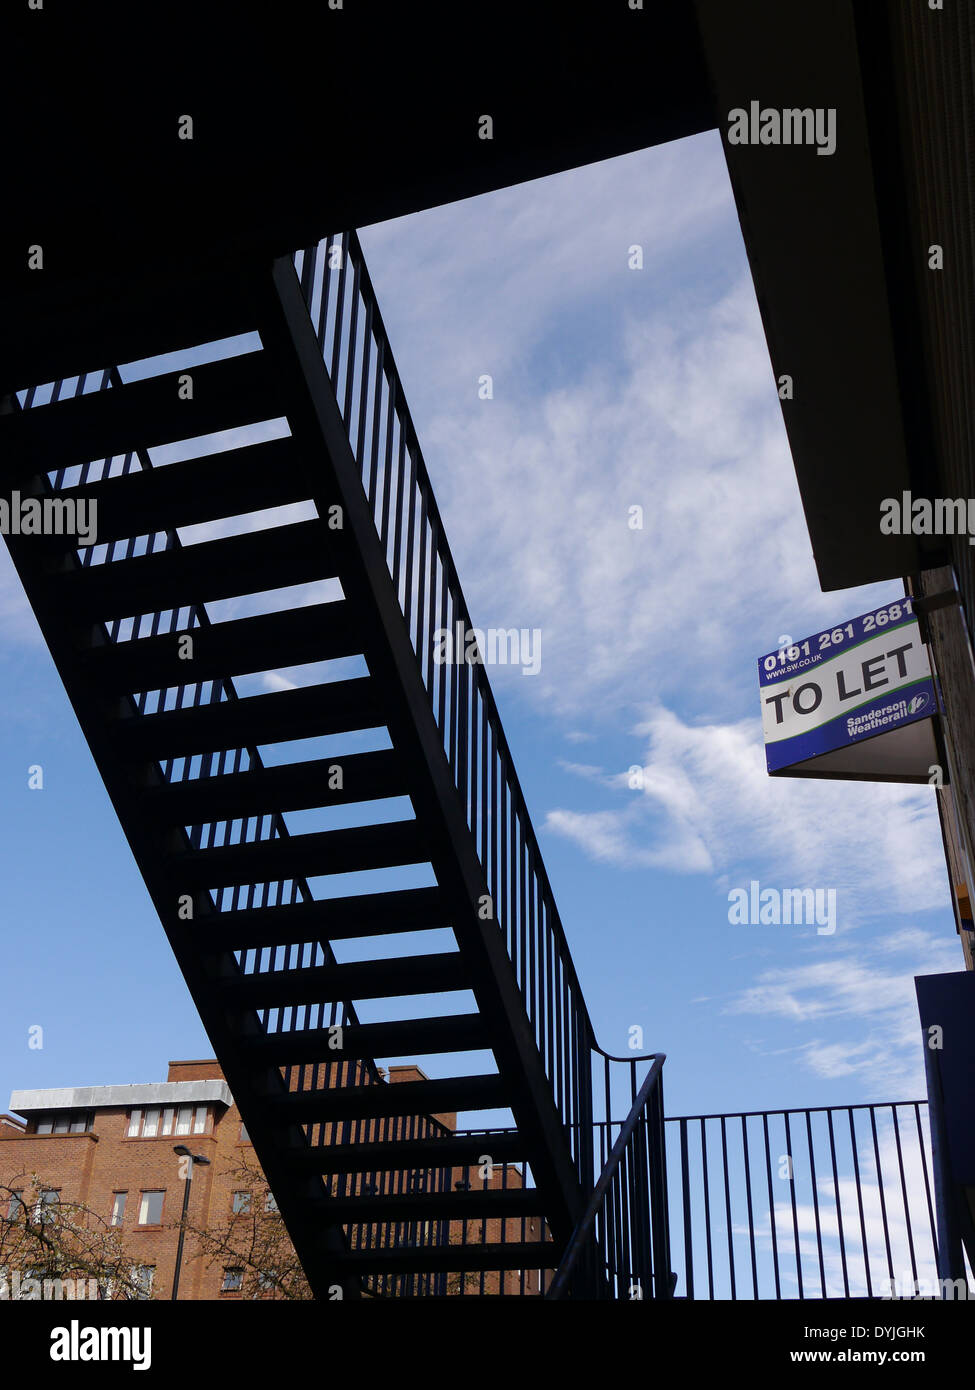 Abstract image of metal staircase in silhouette - art / creative style - Stock Image